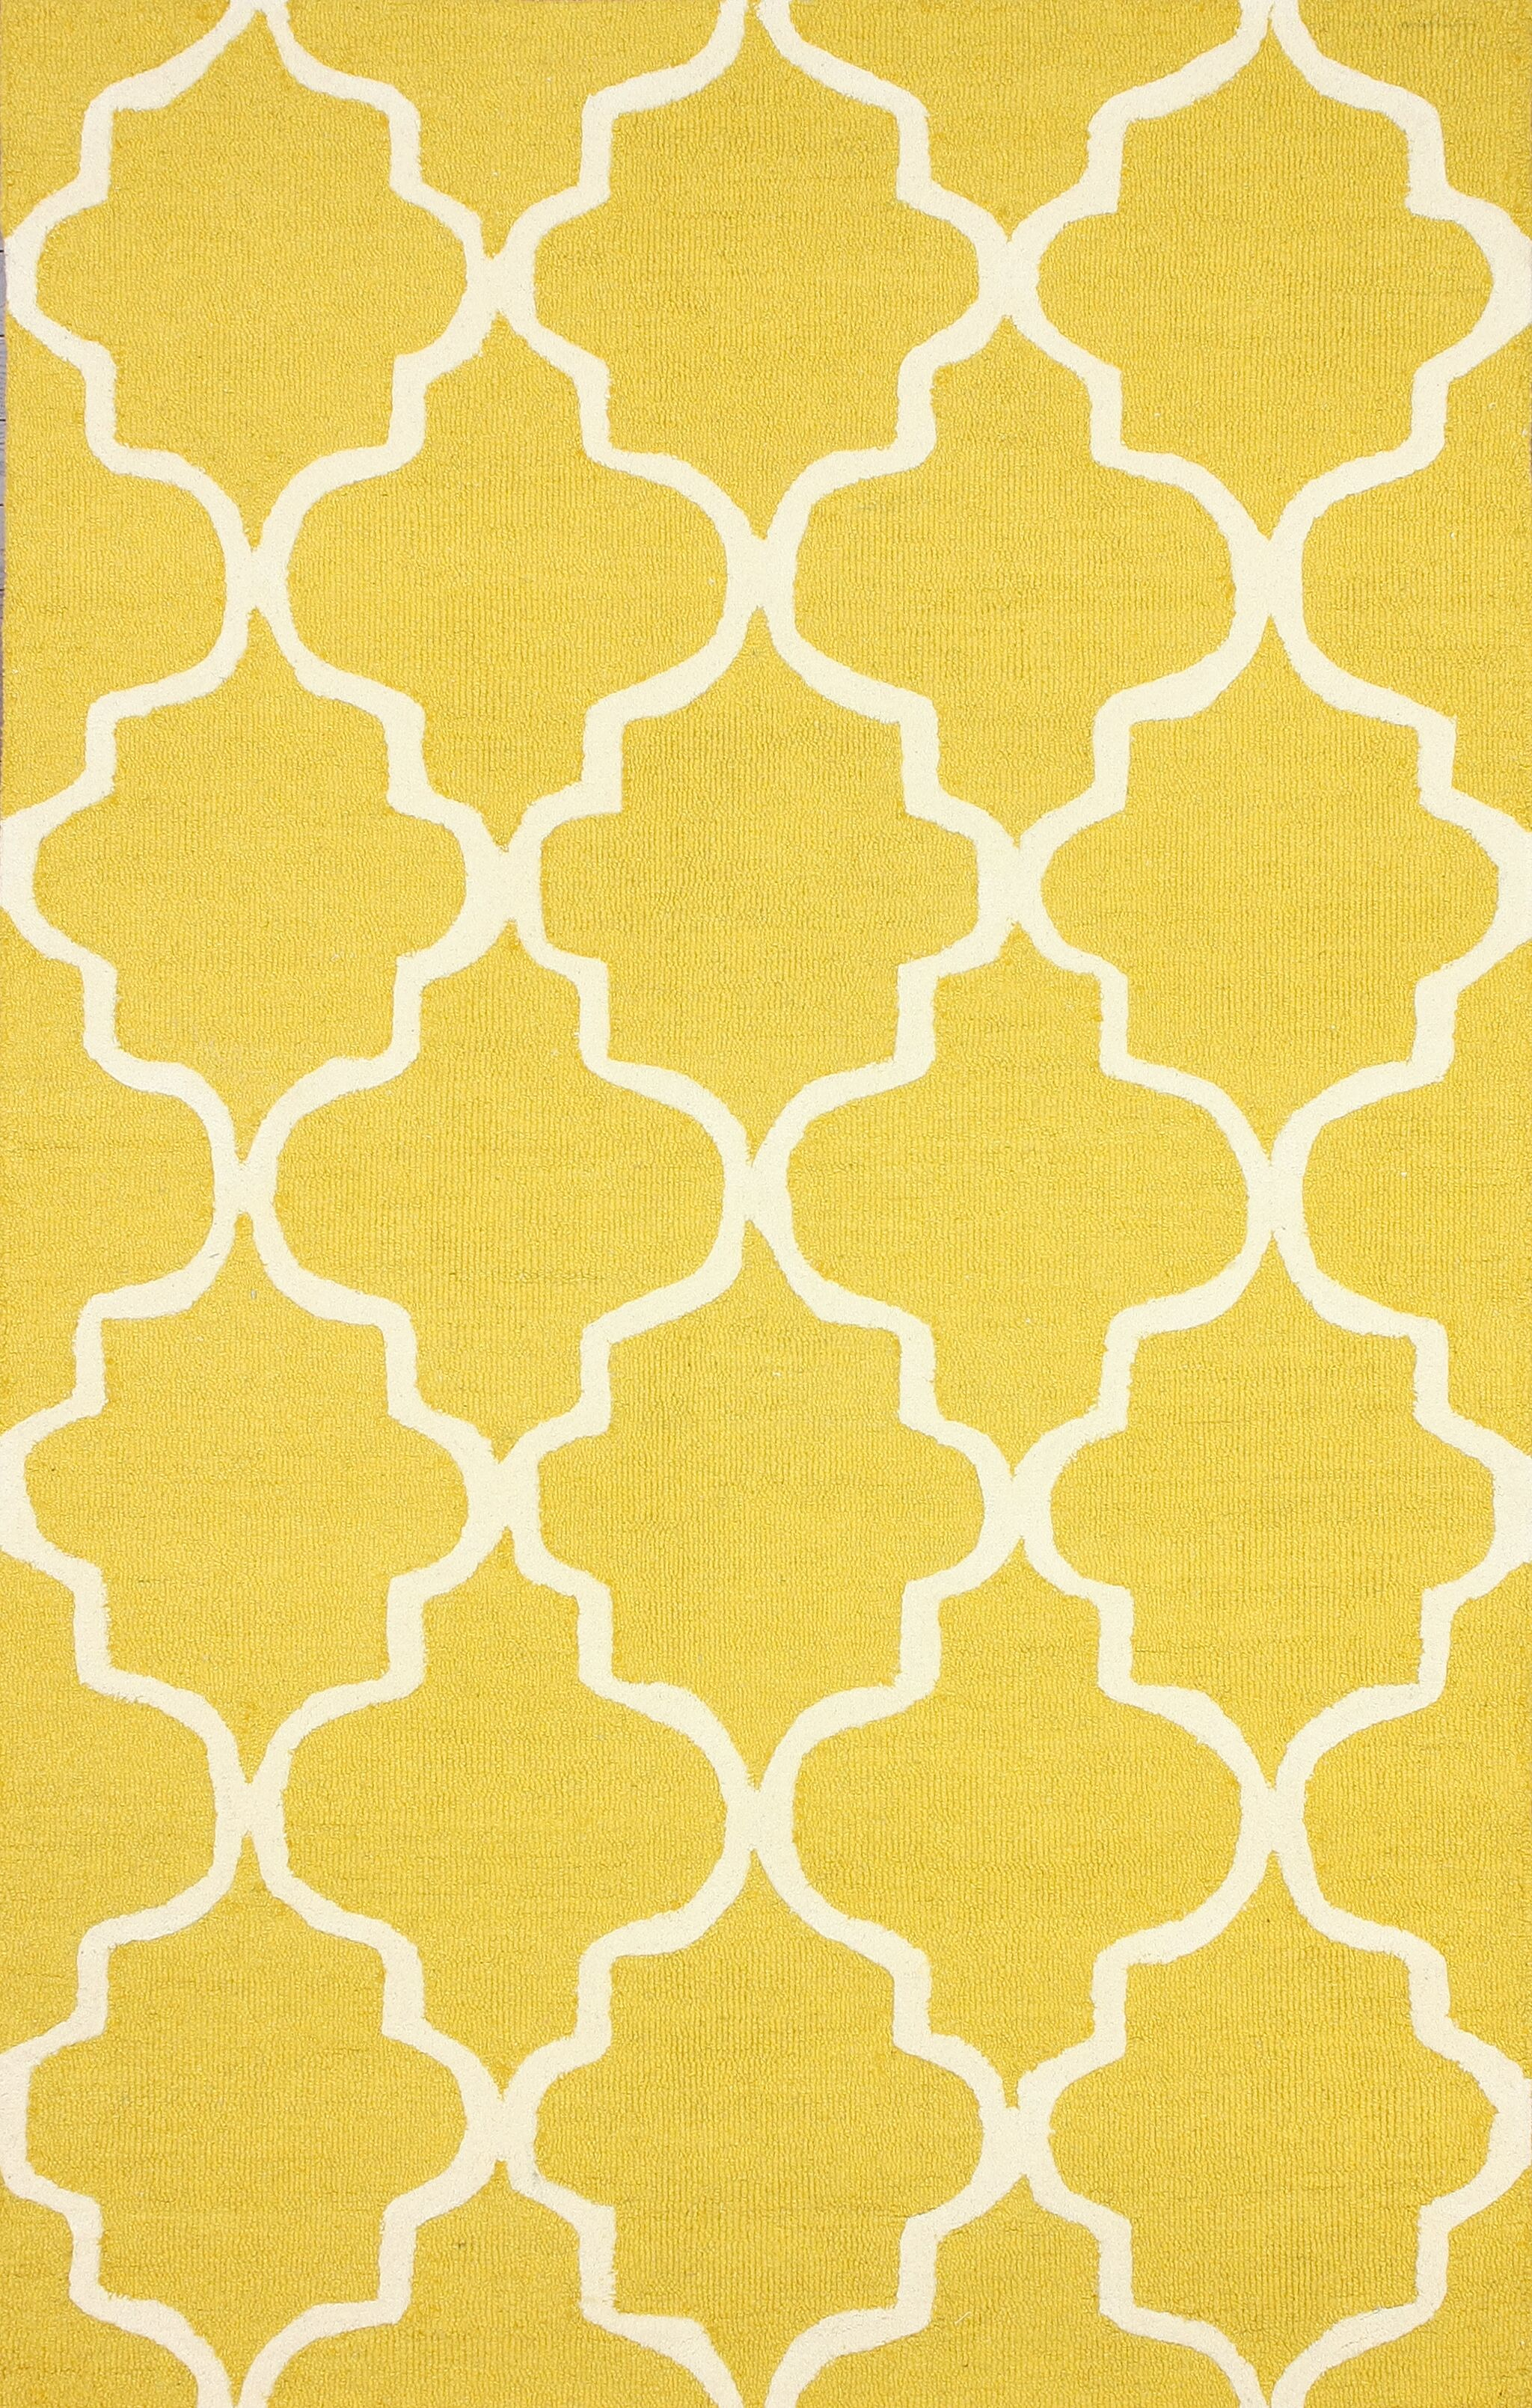 Parkman Holly Hand-Woven Yellow Area Rug Rug Size: Rectangle 6' x 9'